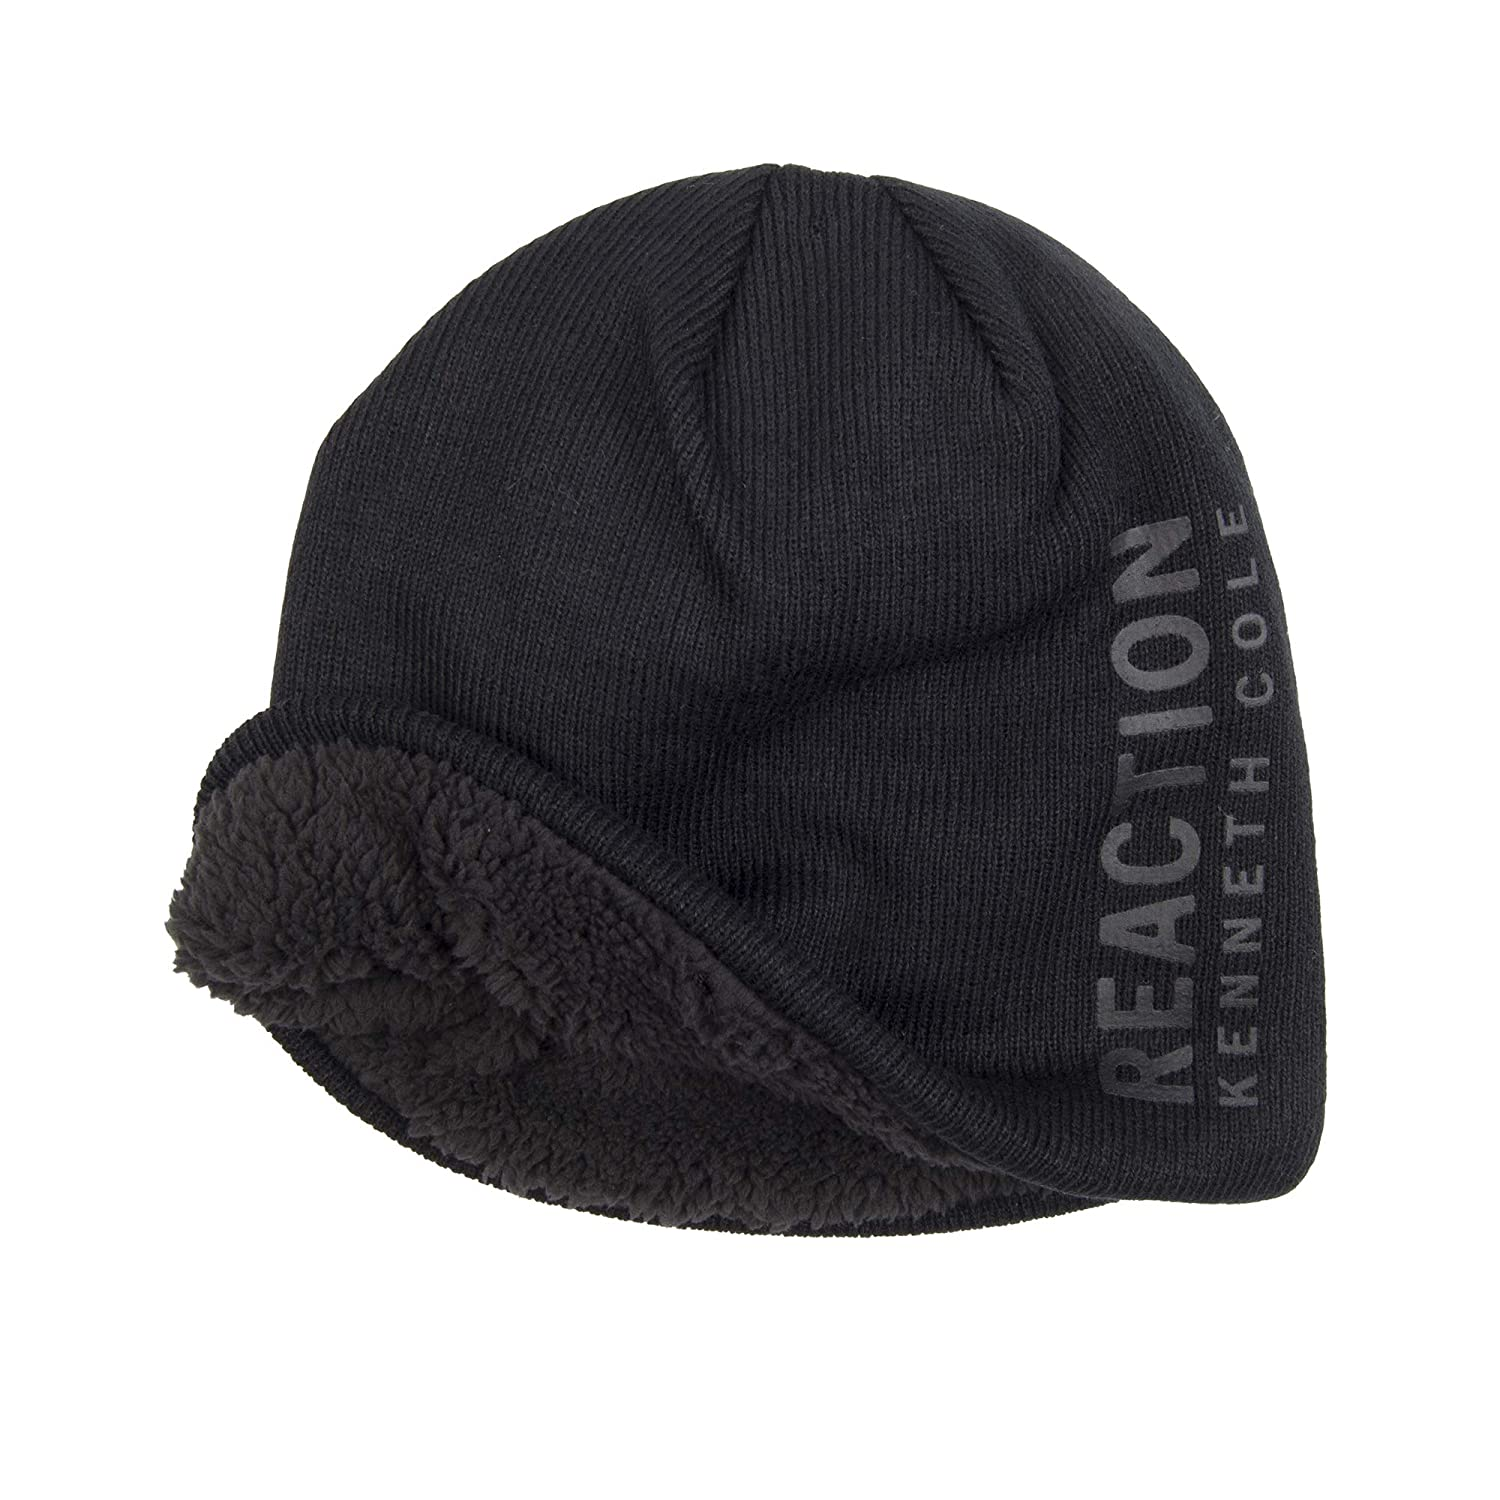 a43b3e50e1c Kenneth cole reaction men warm winter beanie hat black one size at amazon  men clothing store